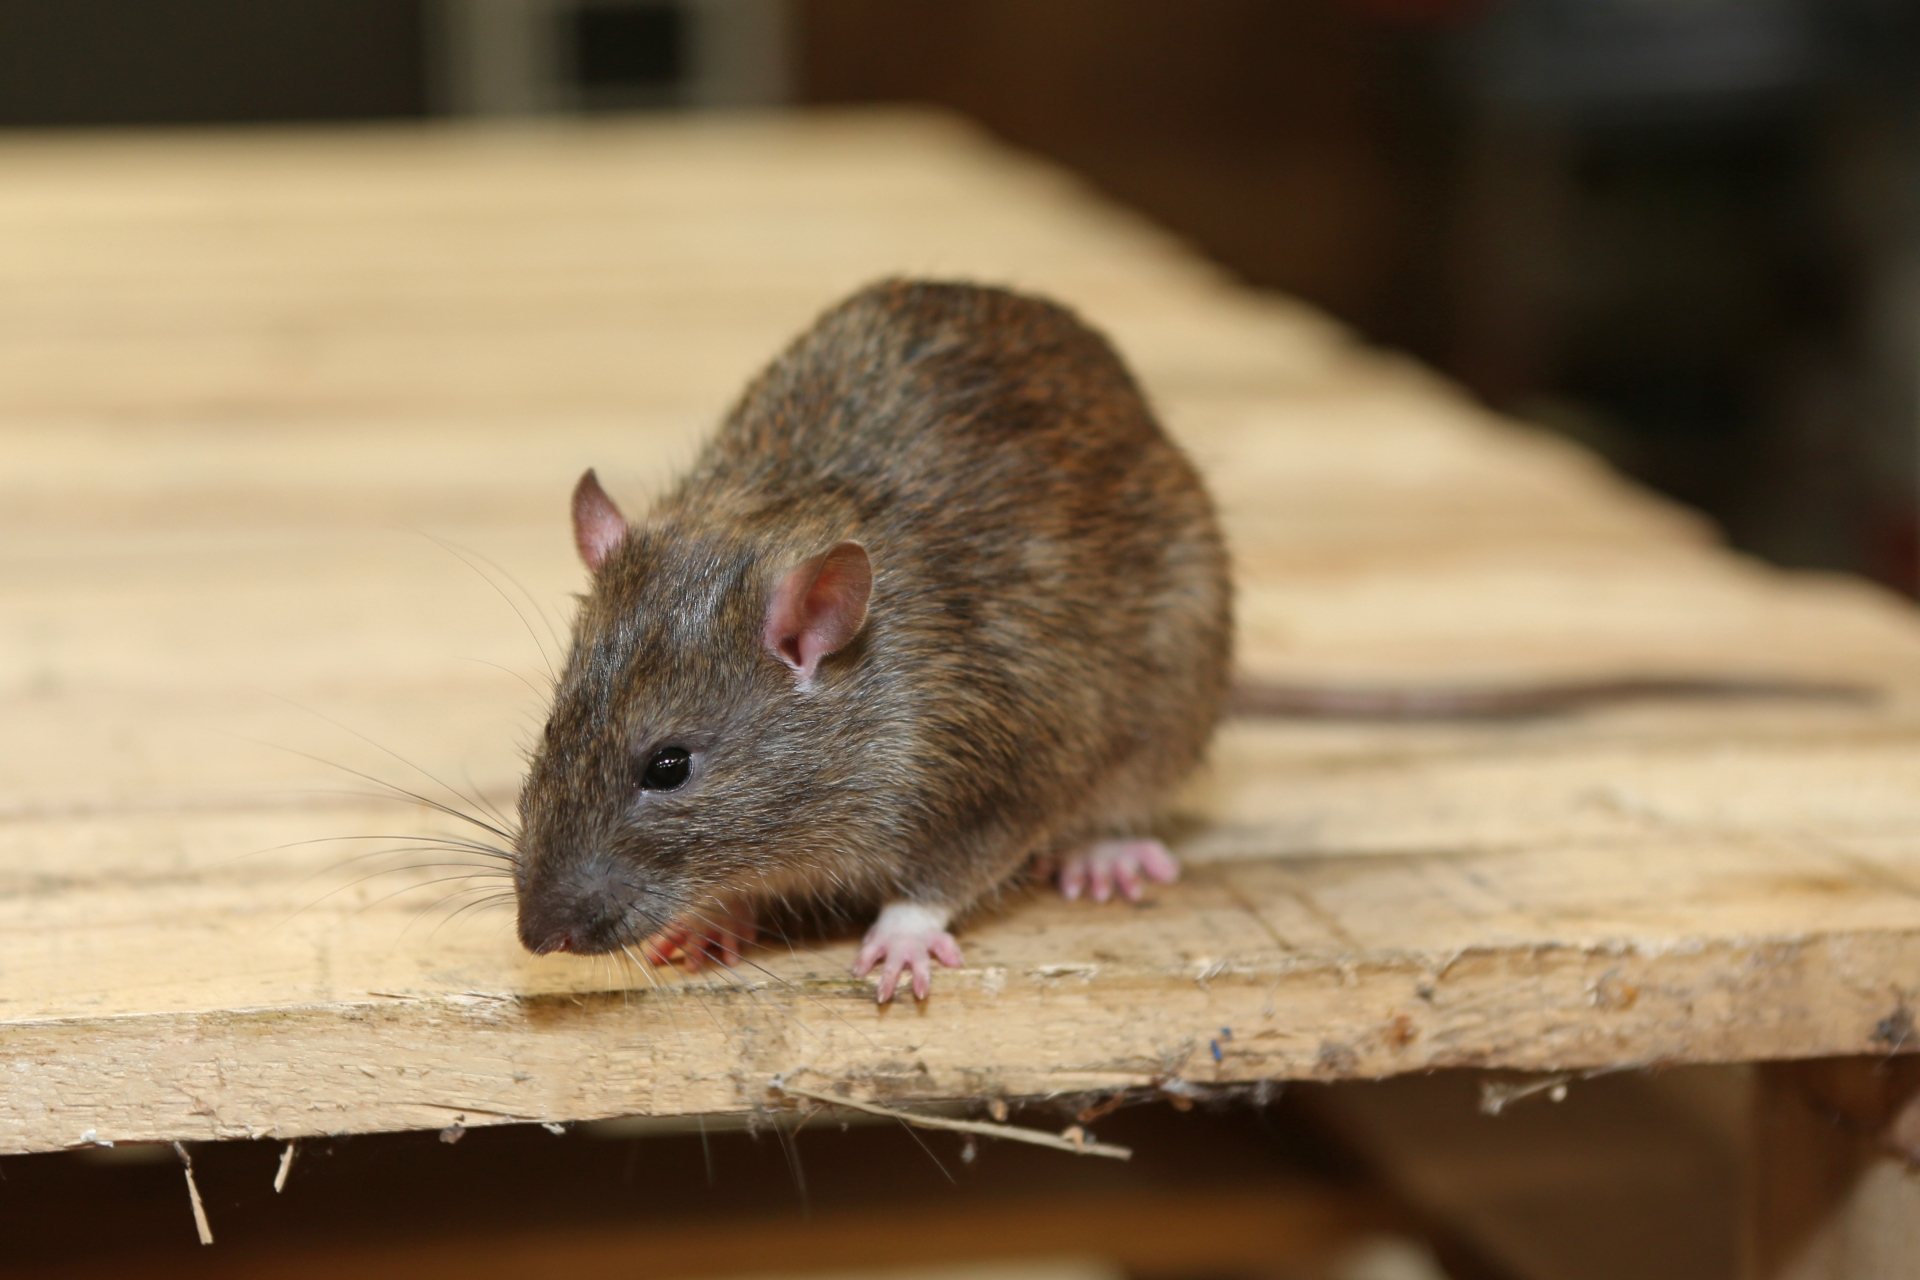 Rat extermination, Pest Control in Battersea, SW11 . Call Now 020 8166 9746